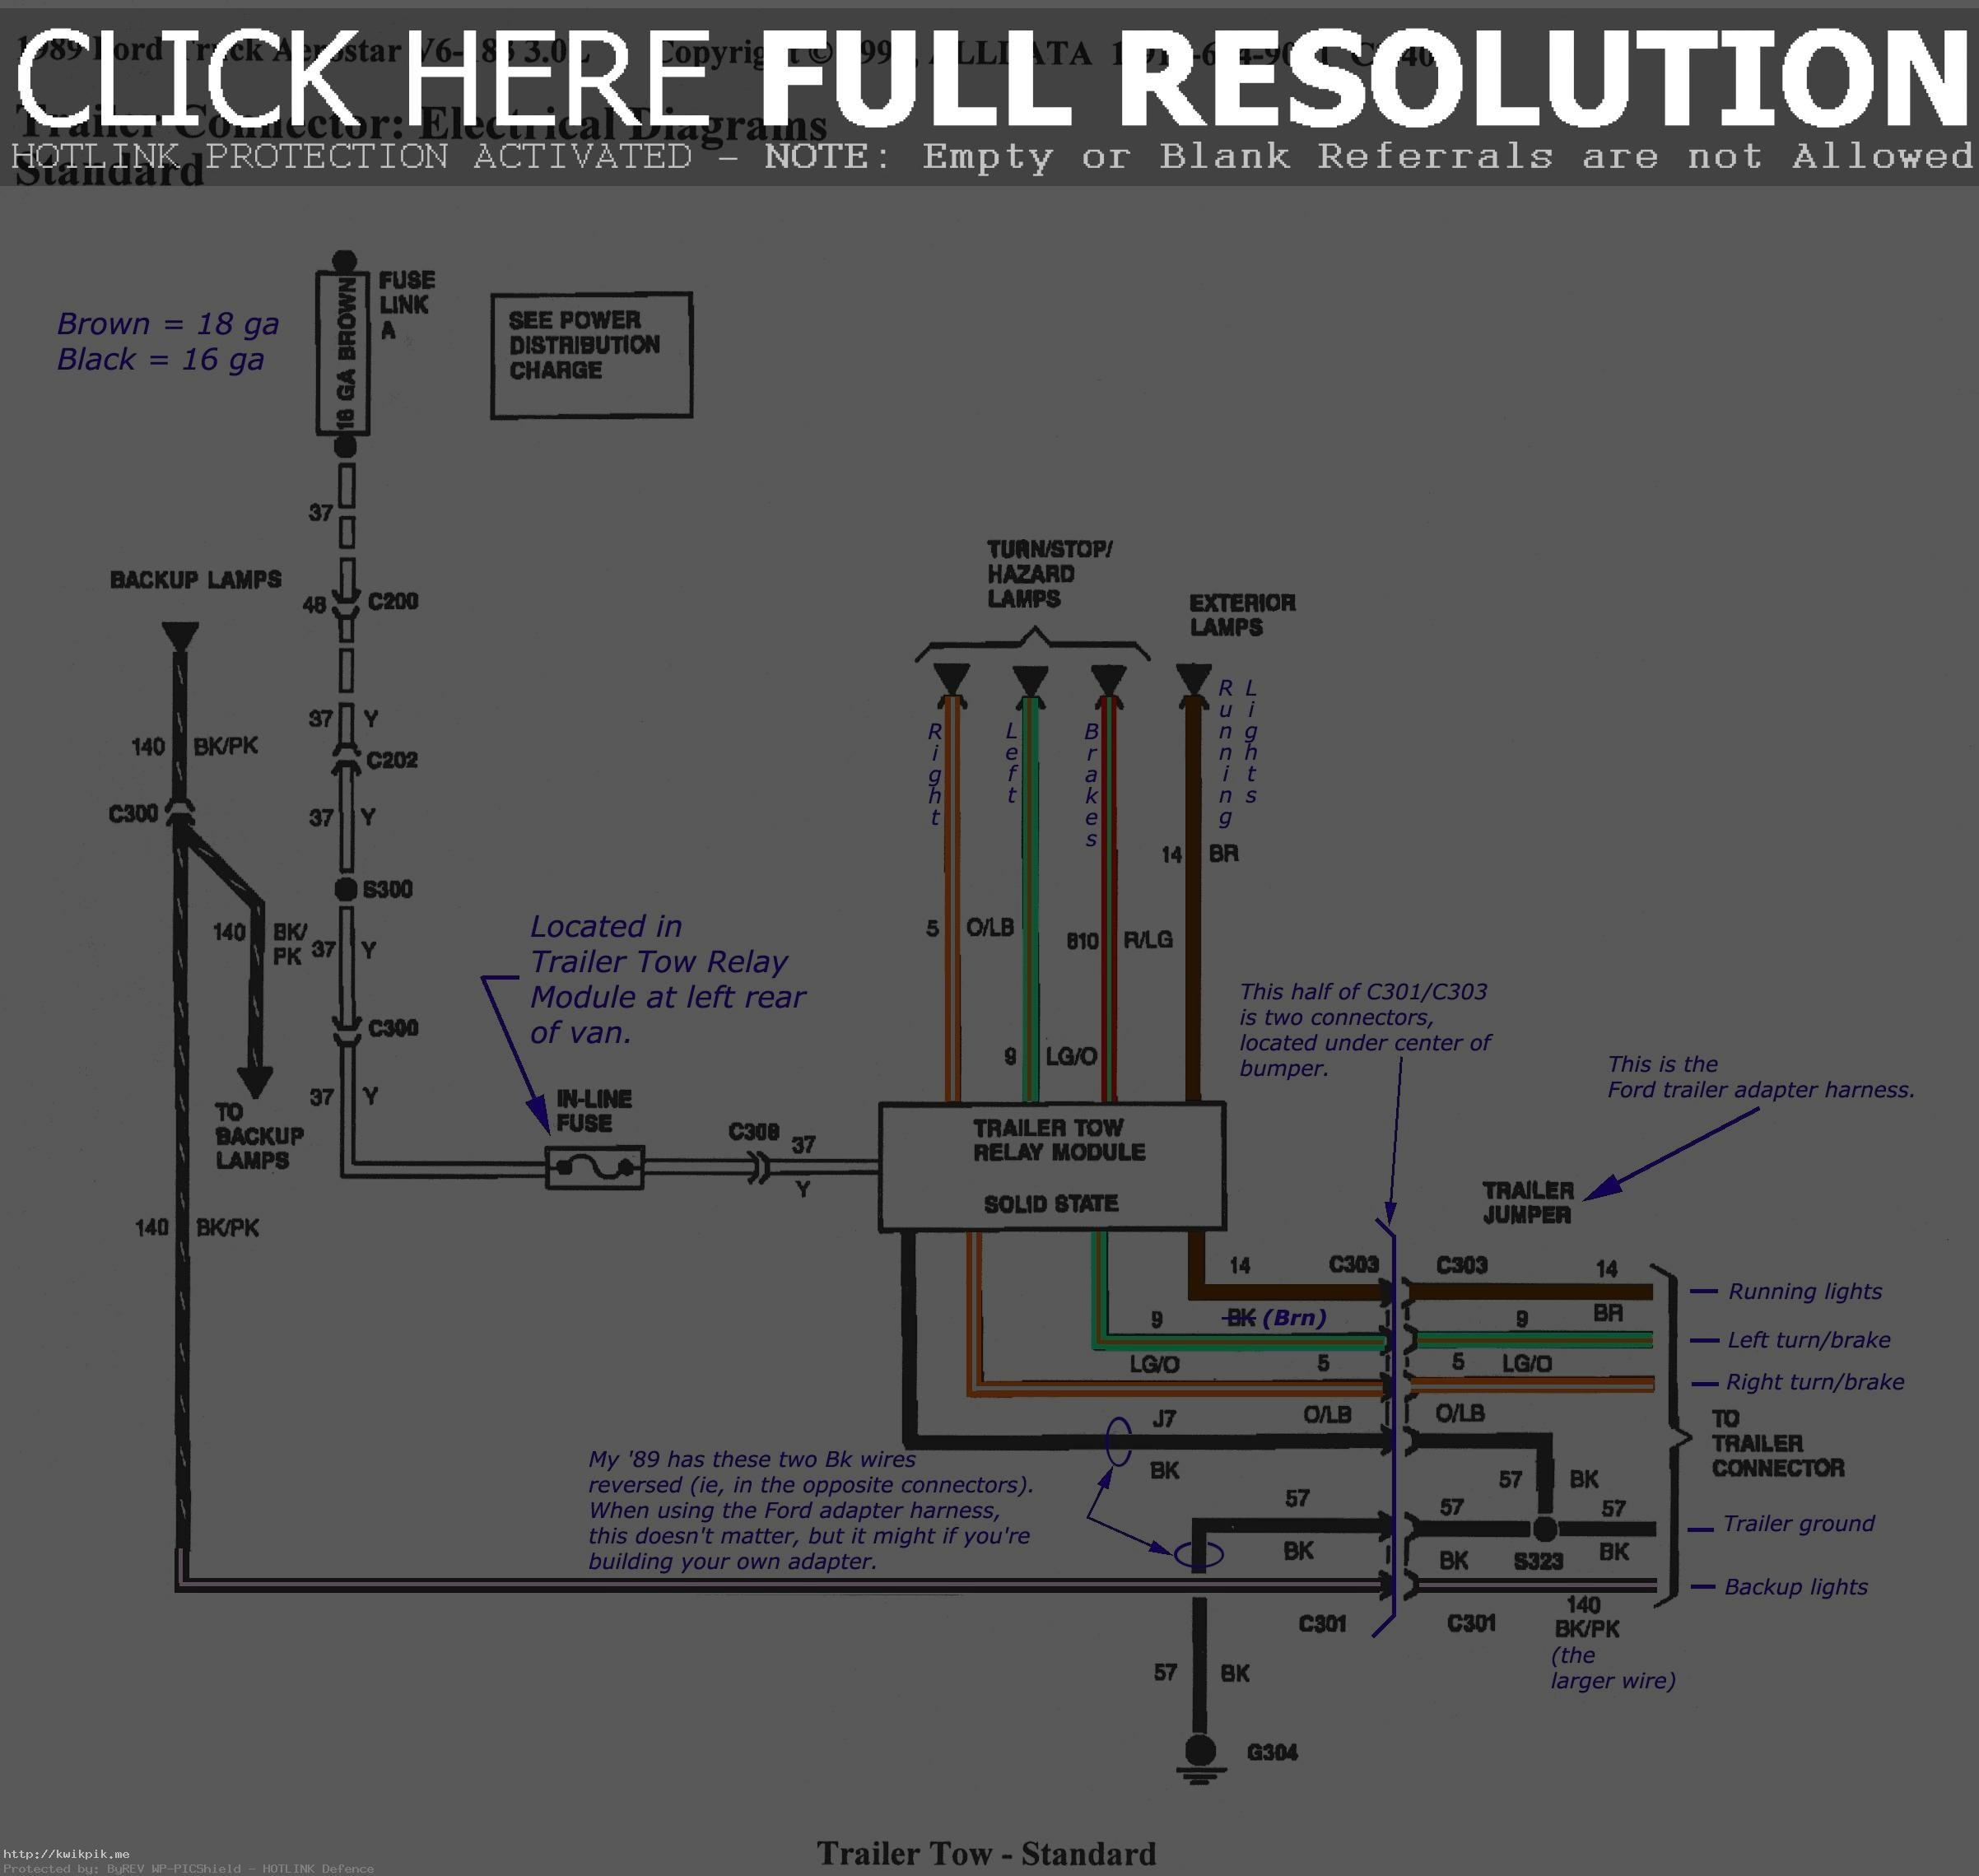 2013 Ford F150 Backup Camera Wiring Diagram from static-resources.imageservice.cloud